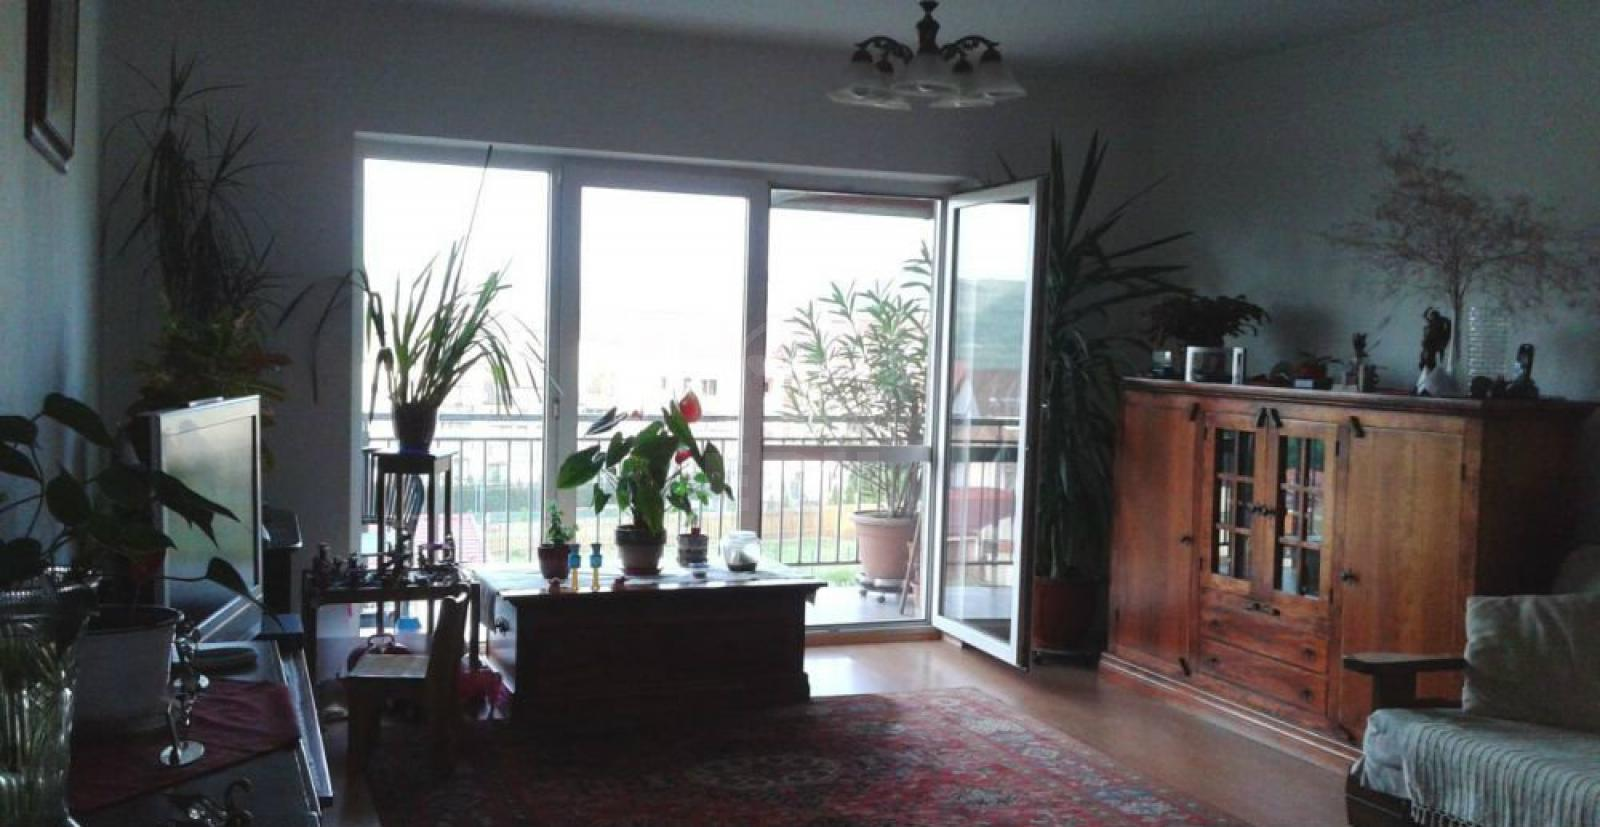 Apartment for sale 3 rooms, APCJ273577-1